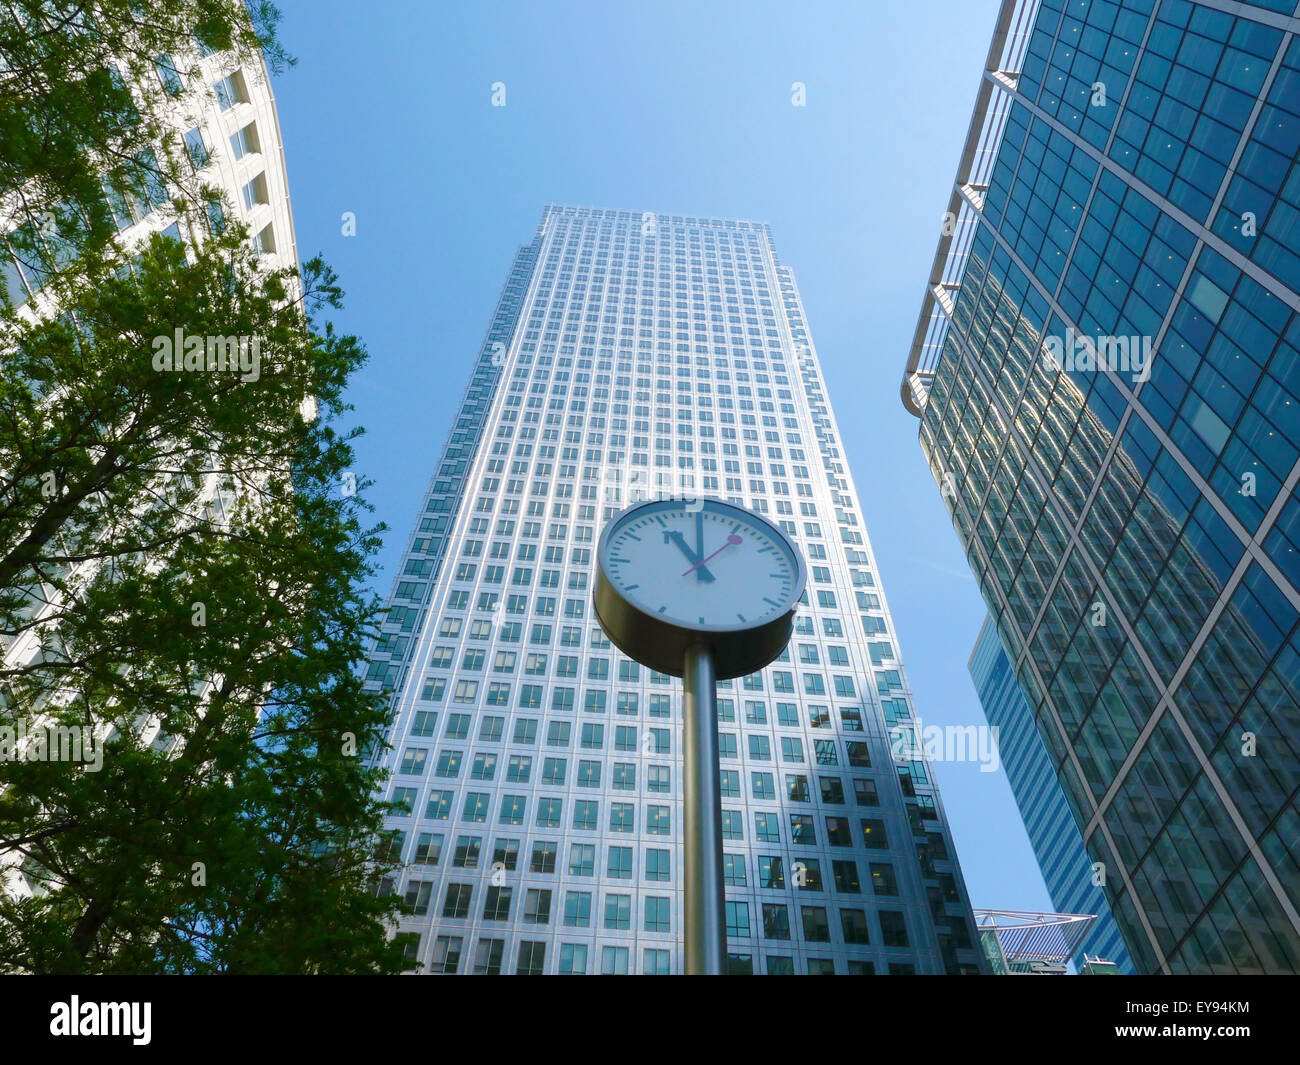 one of the six public clocks in front of the famous business office block One Canada Square in Canary Wharf, London - Stock Image